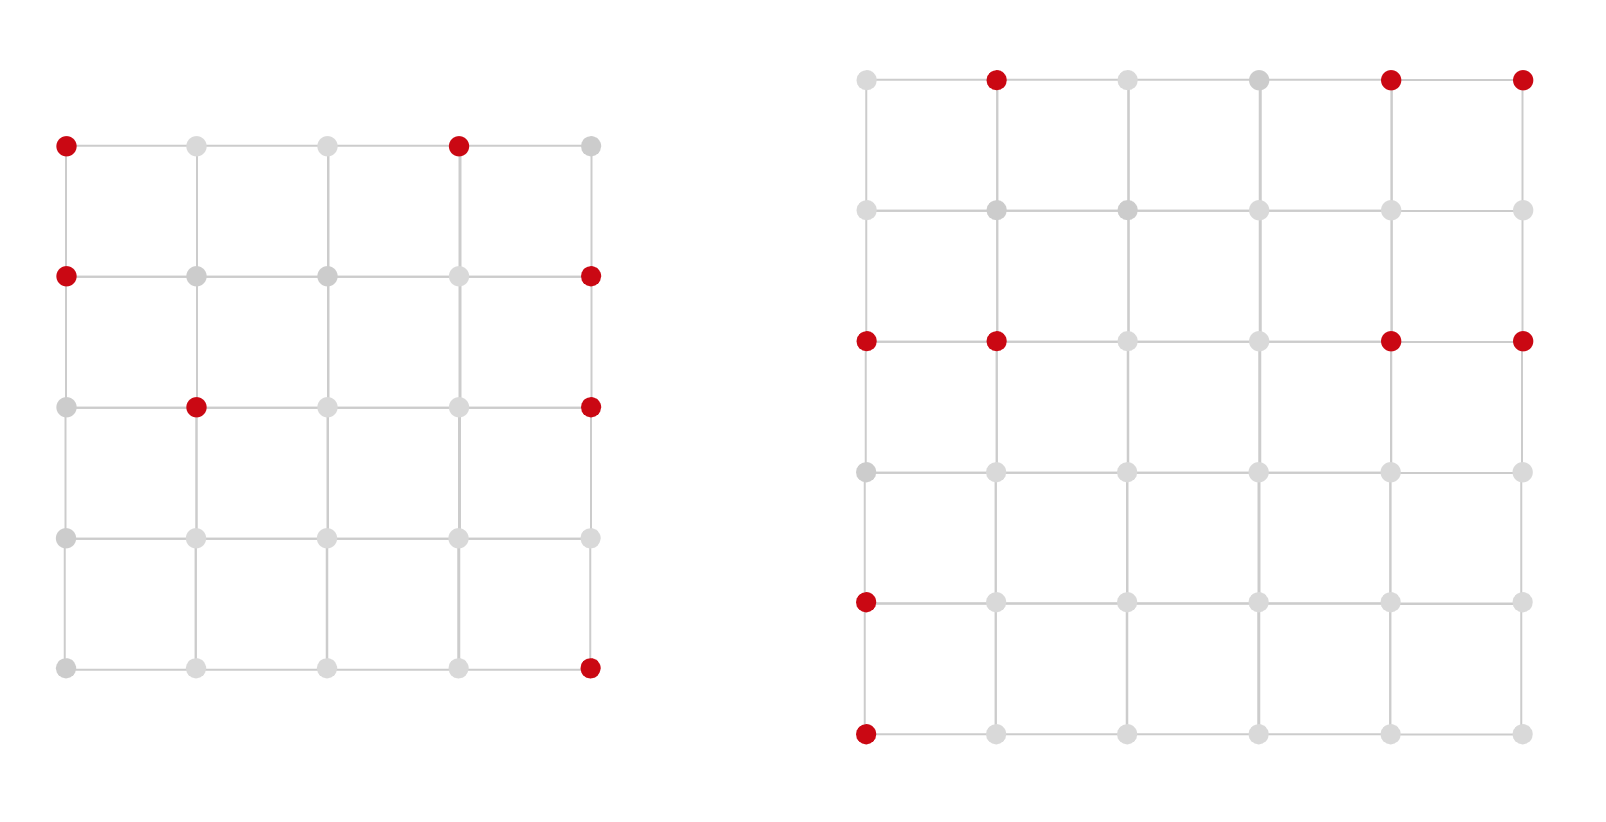 Anti-isosceles sets in a 5x5 grid (with seven points) and a 6x6 grid (with nine points).